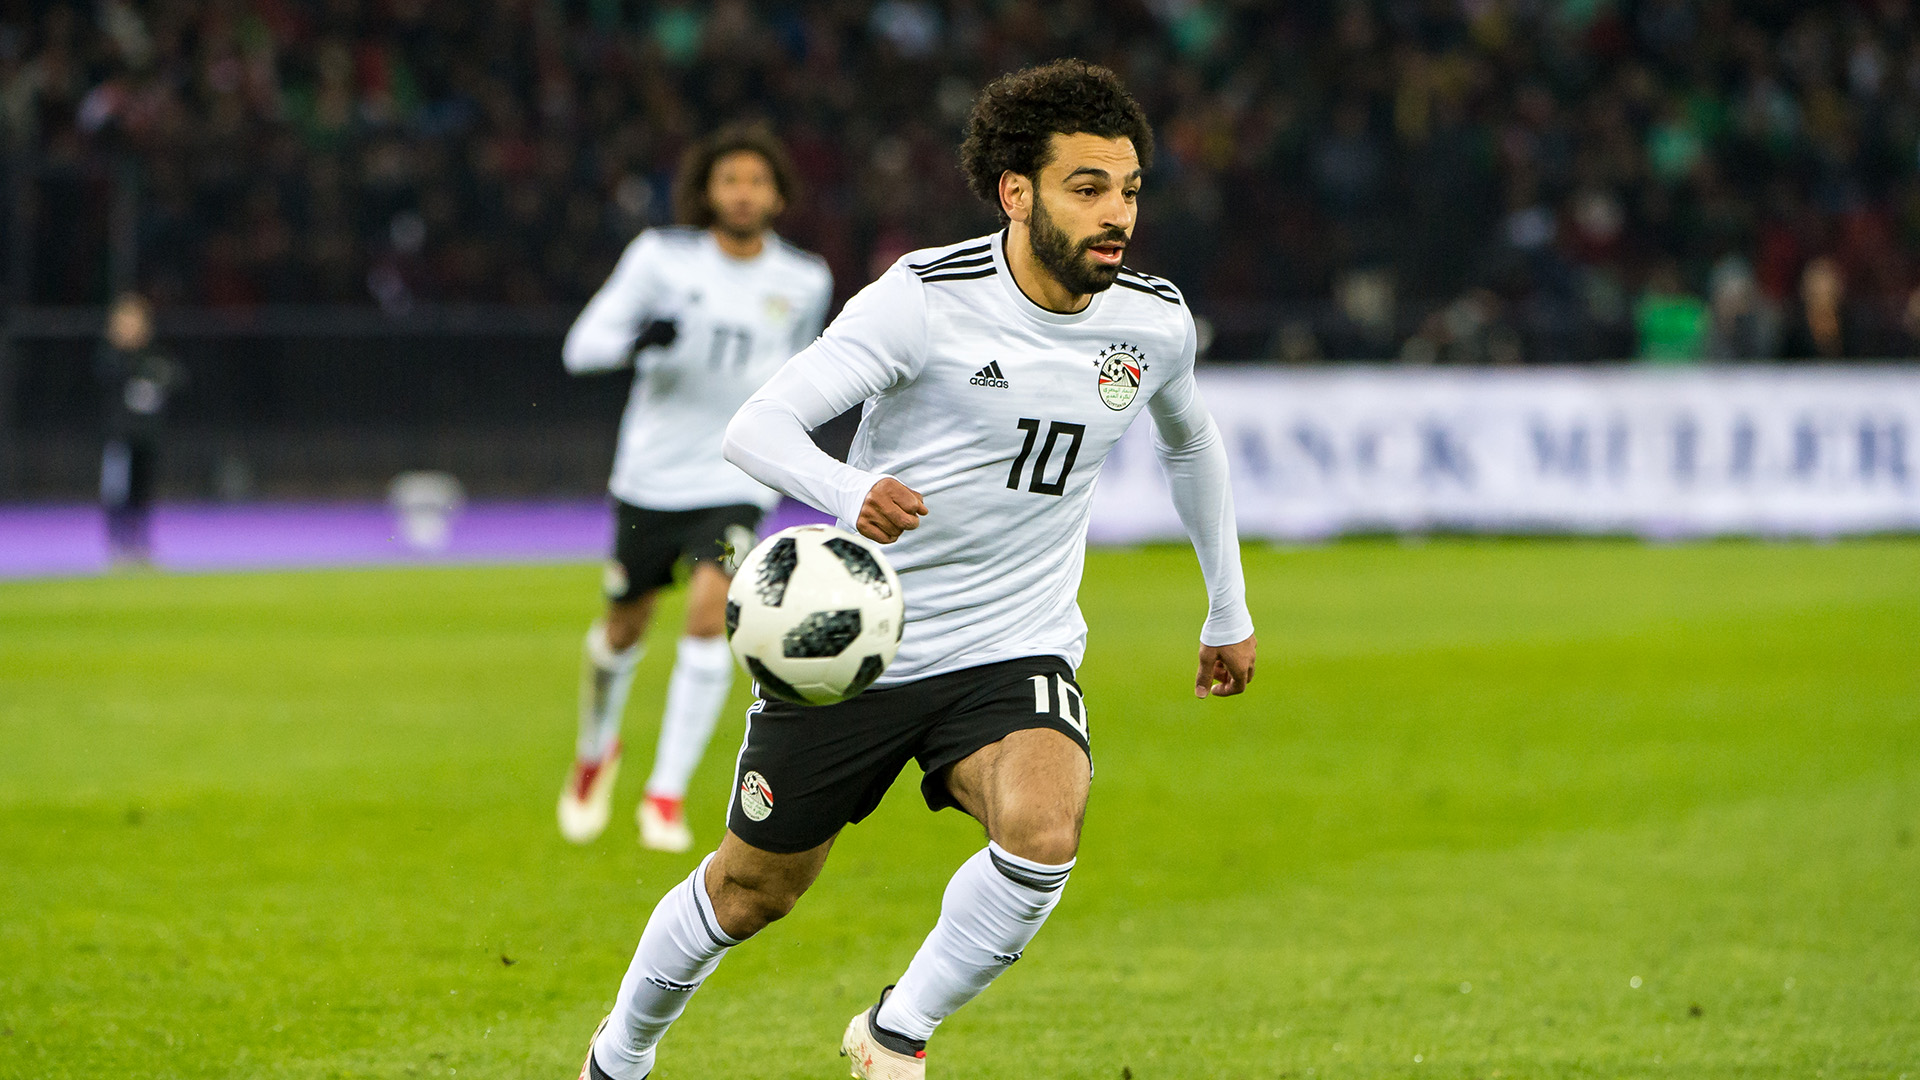 Egypt vs Uruguay: 5 things to look forward to as Salah returns